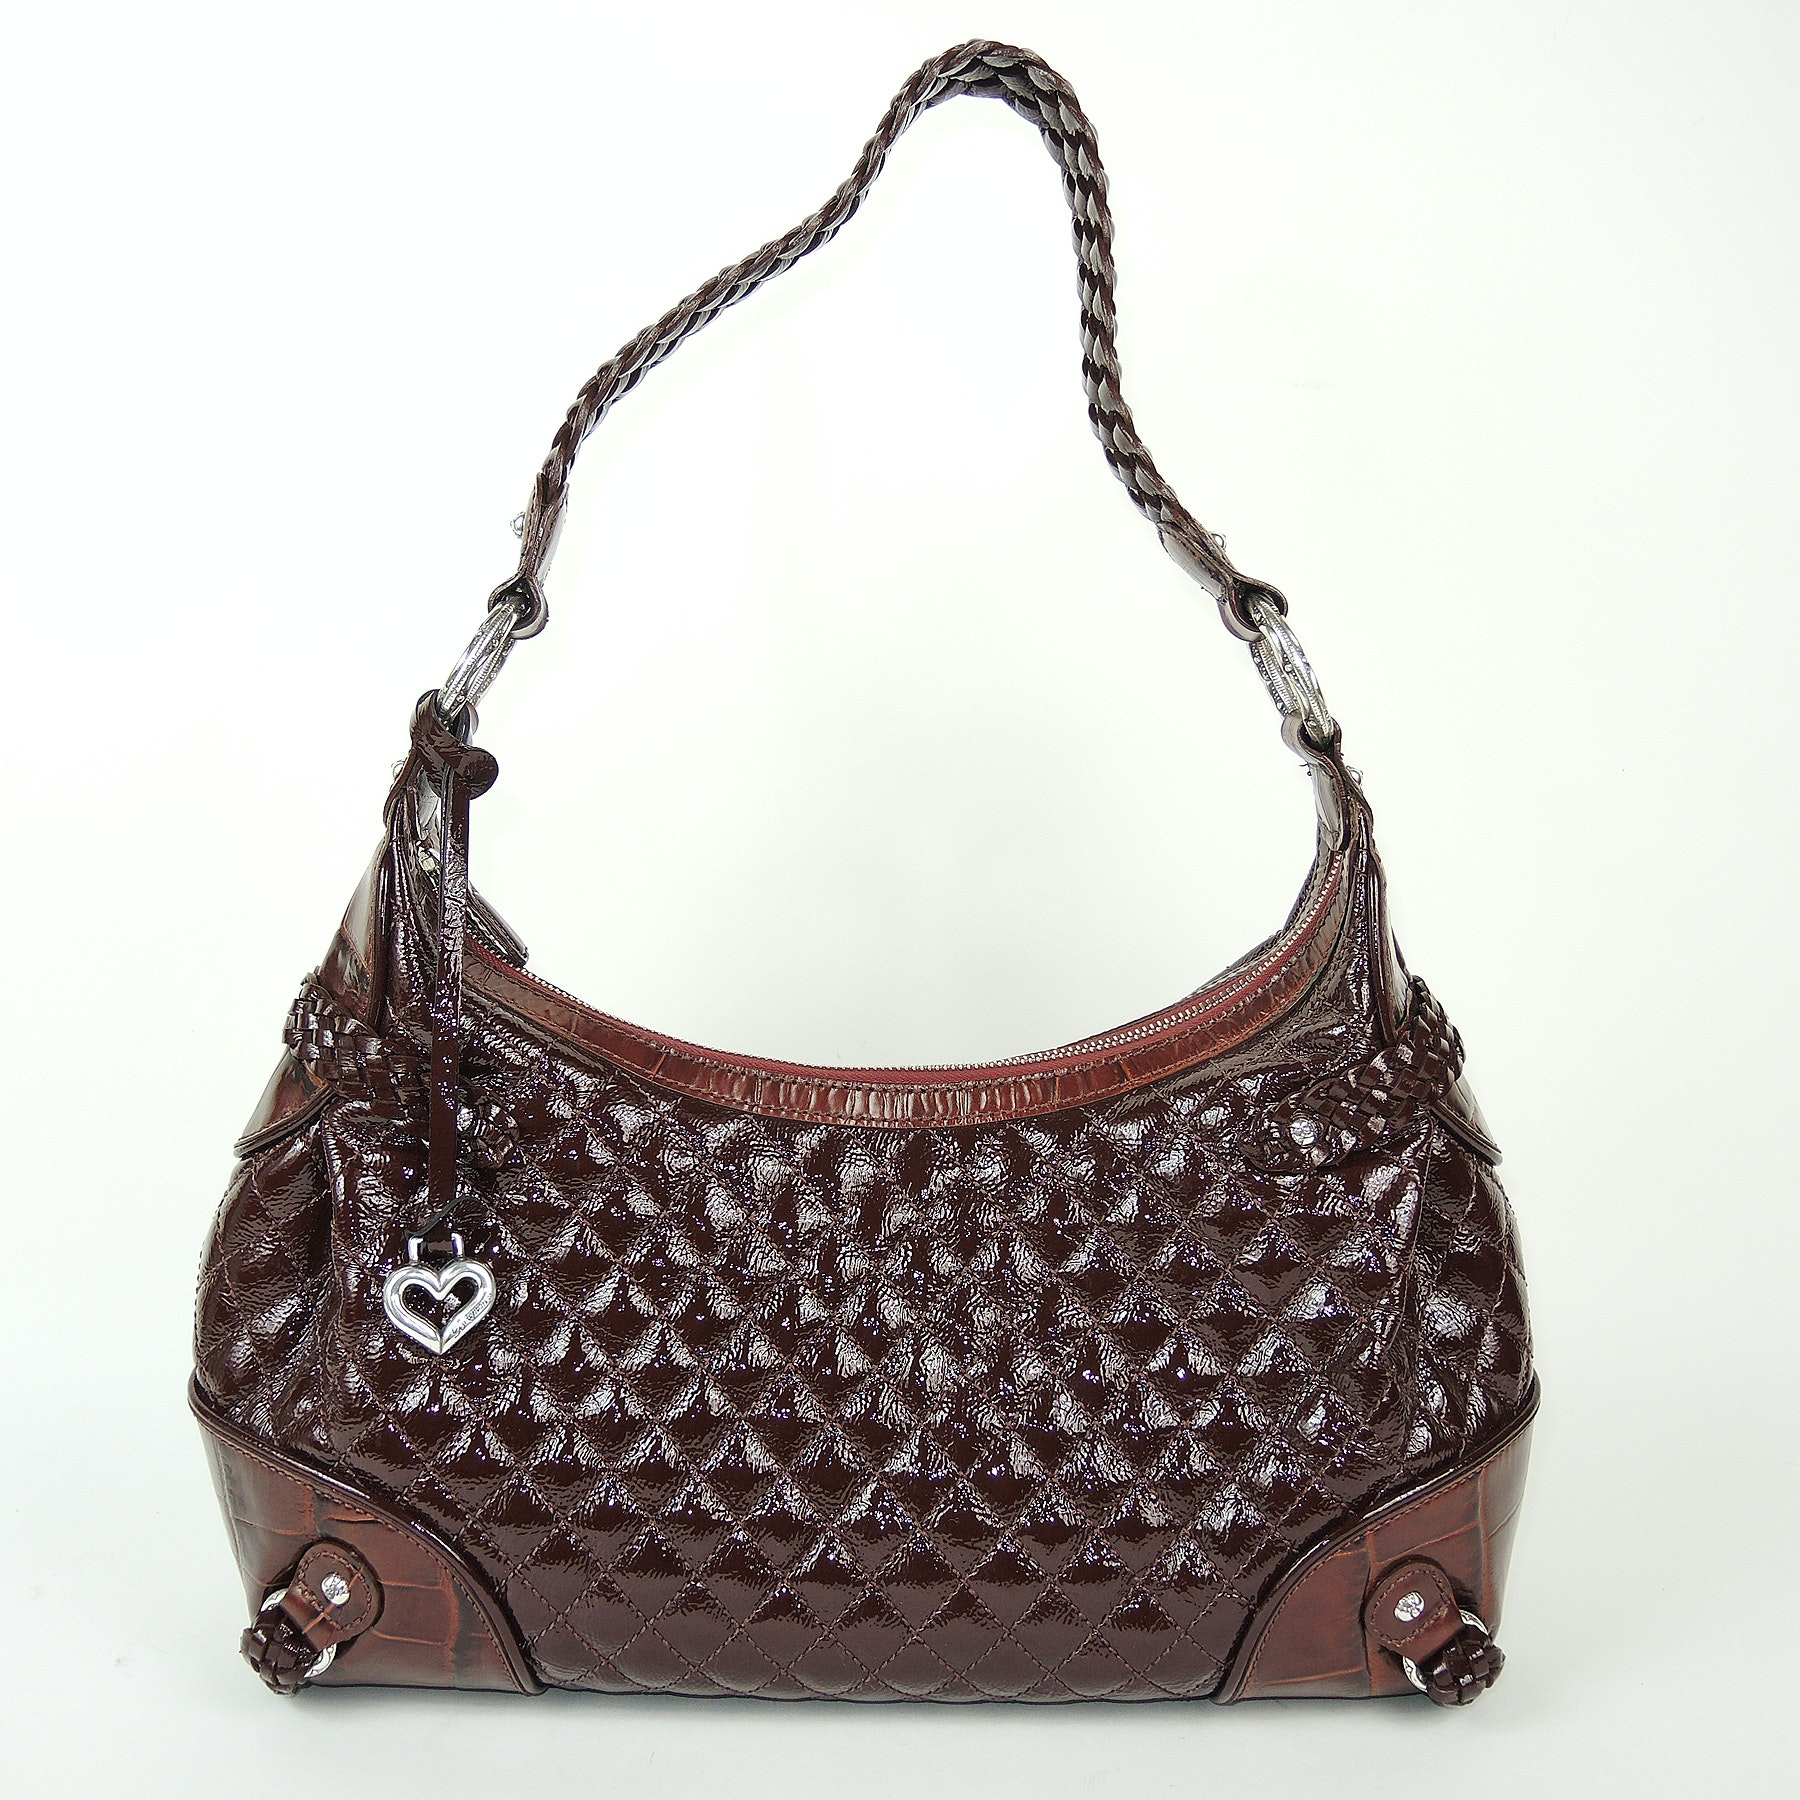 Brighton Quilted Brown and Embossed Leather Handbag